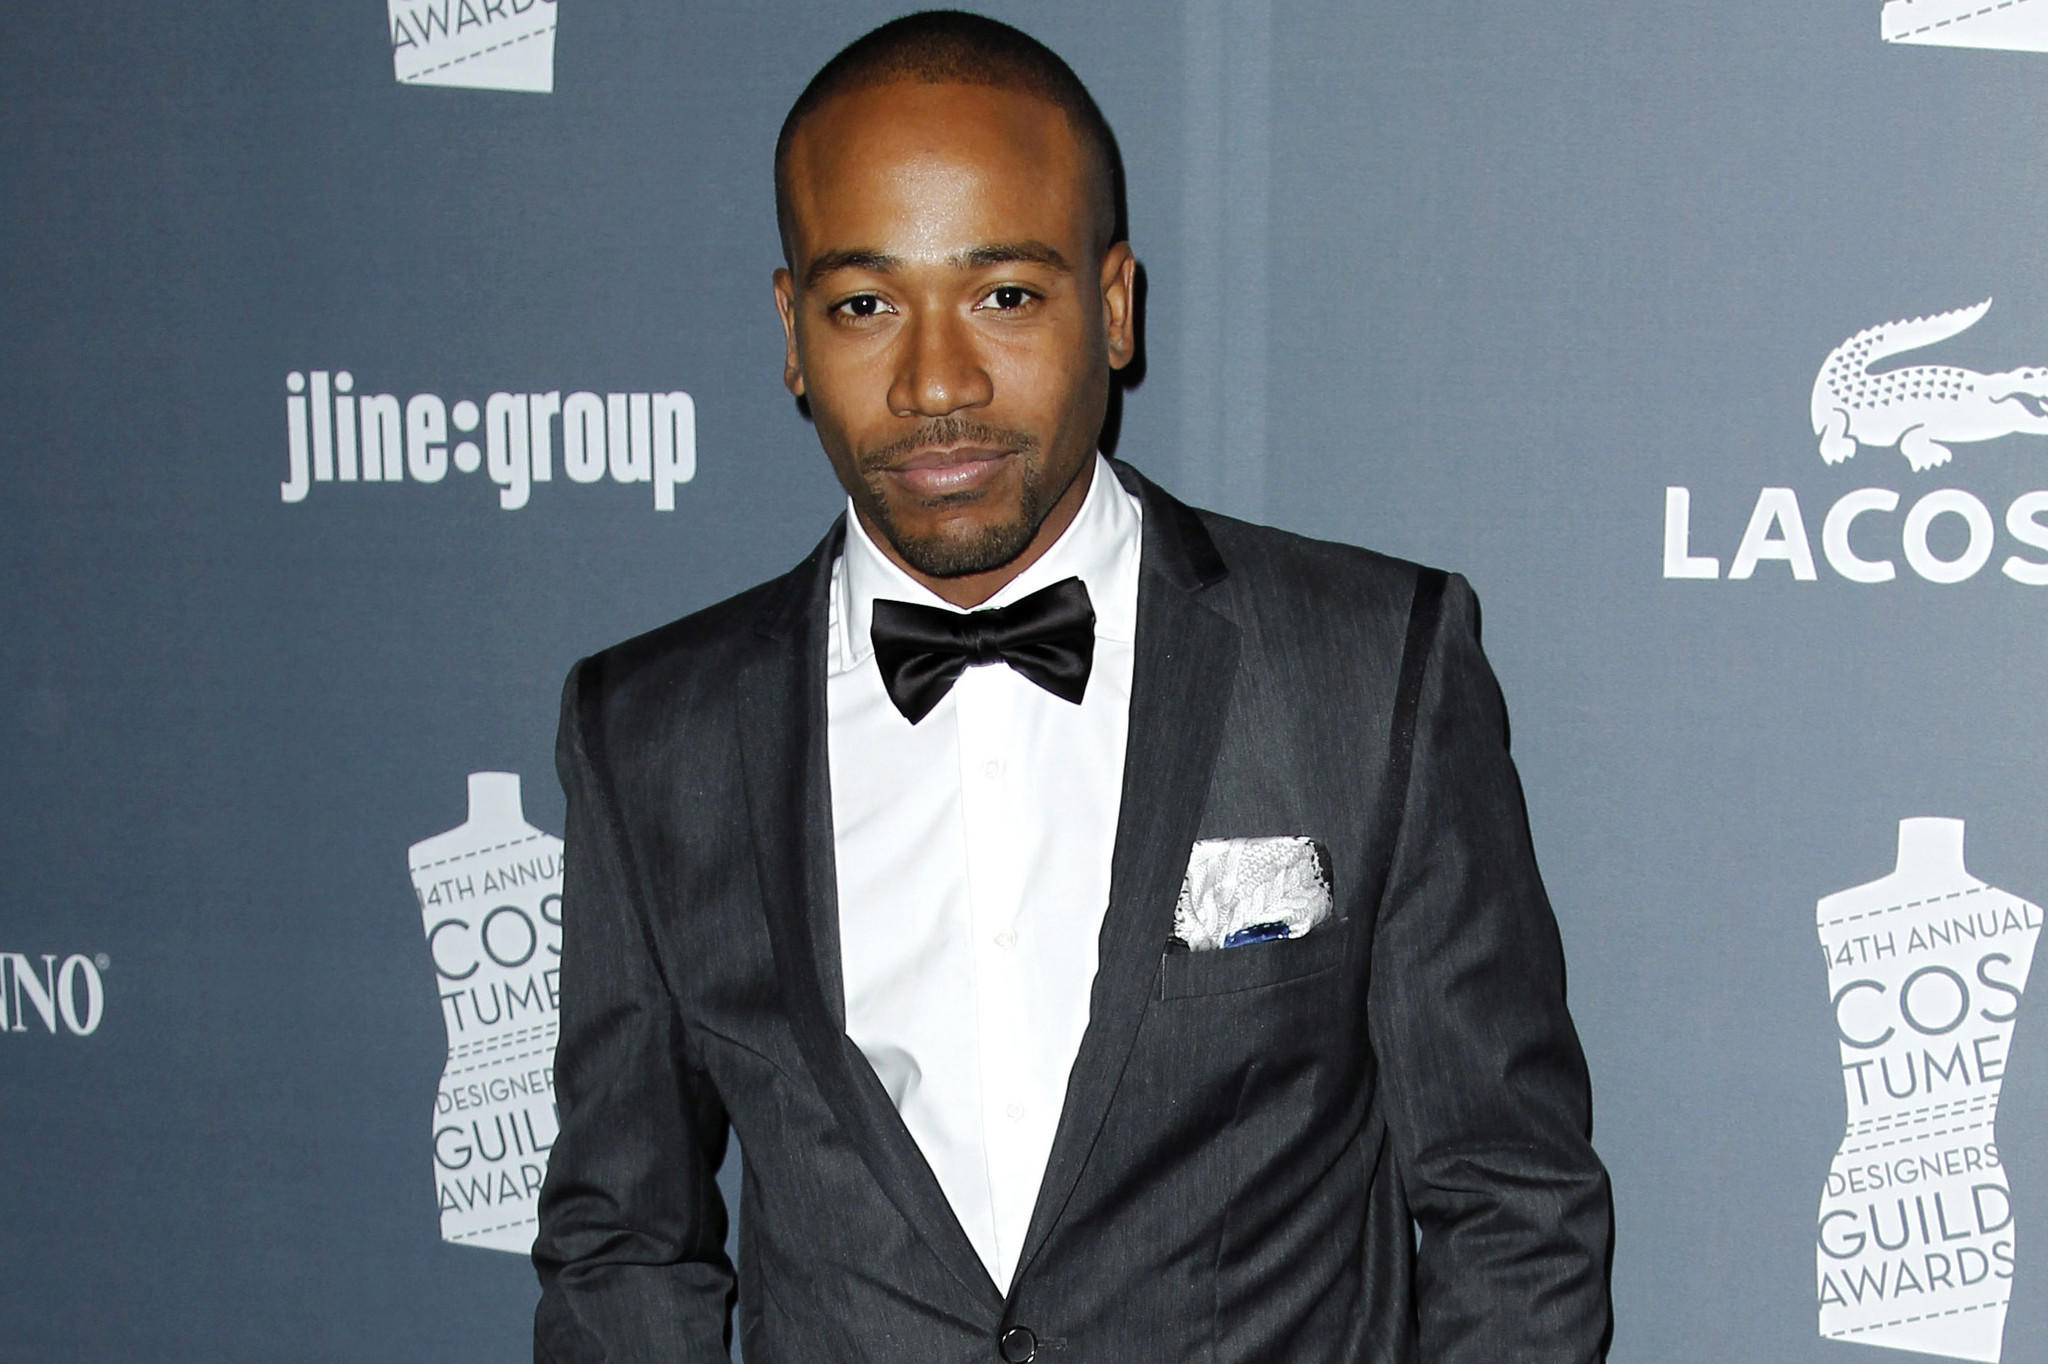 'Scandal' actor Columbus Short was arrested on a felony battery charge filed after he allegedly knocked a man out in a restaurant during an altercation on March 15.